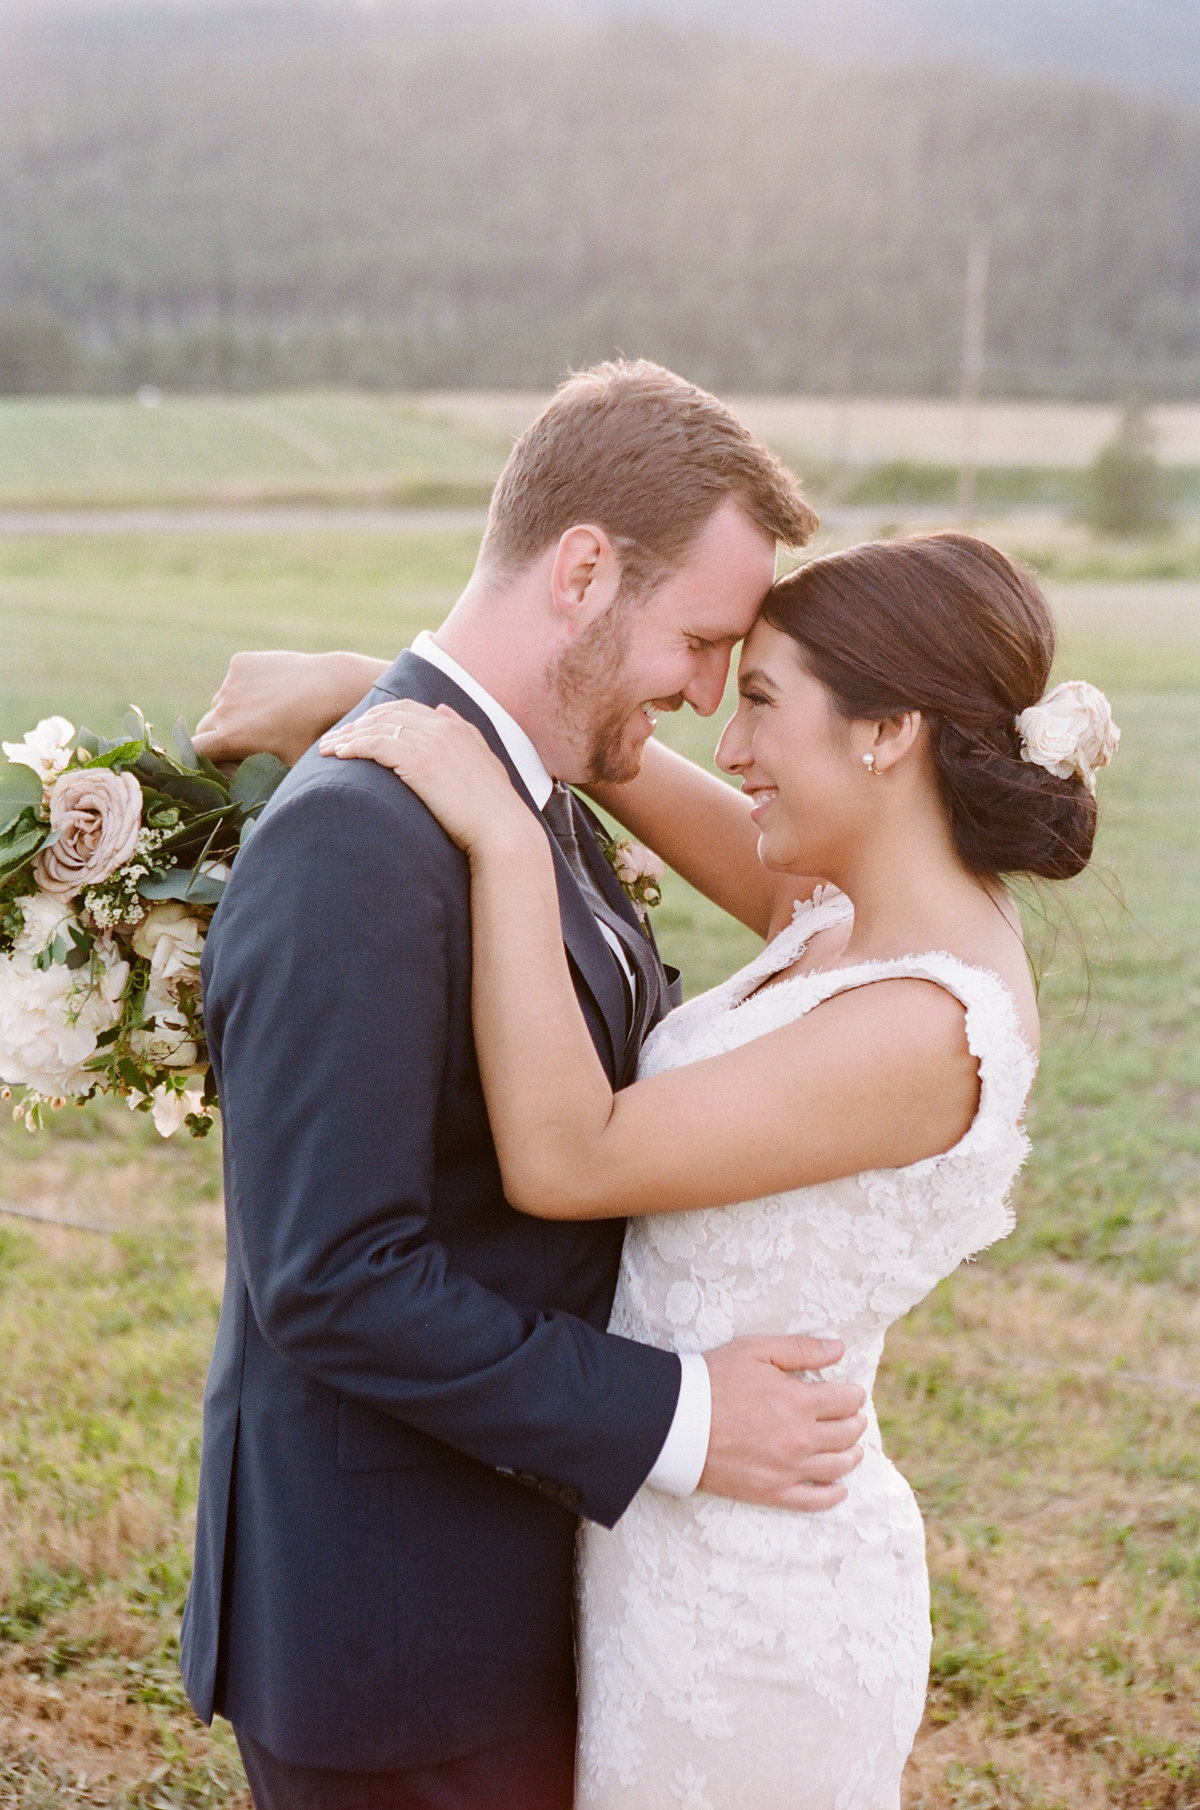 Melissa+Morgans_Wedding_BrideandGroom-1